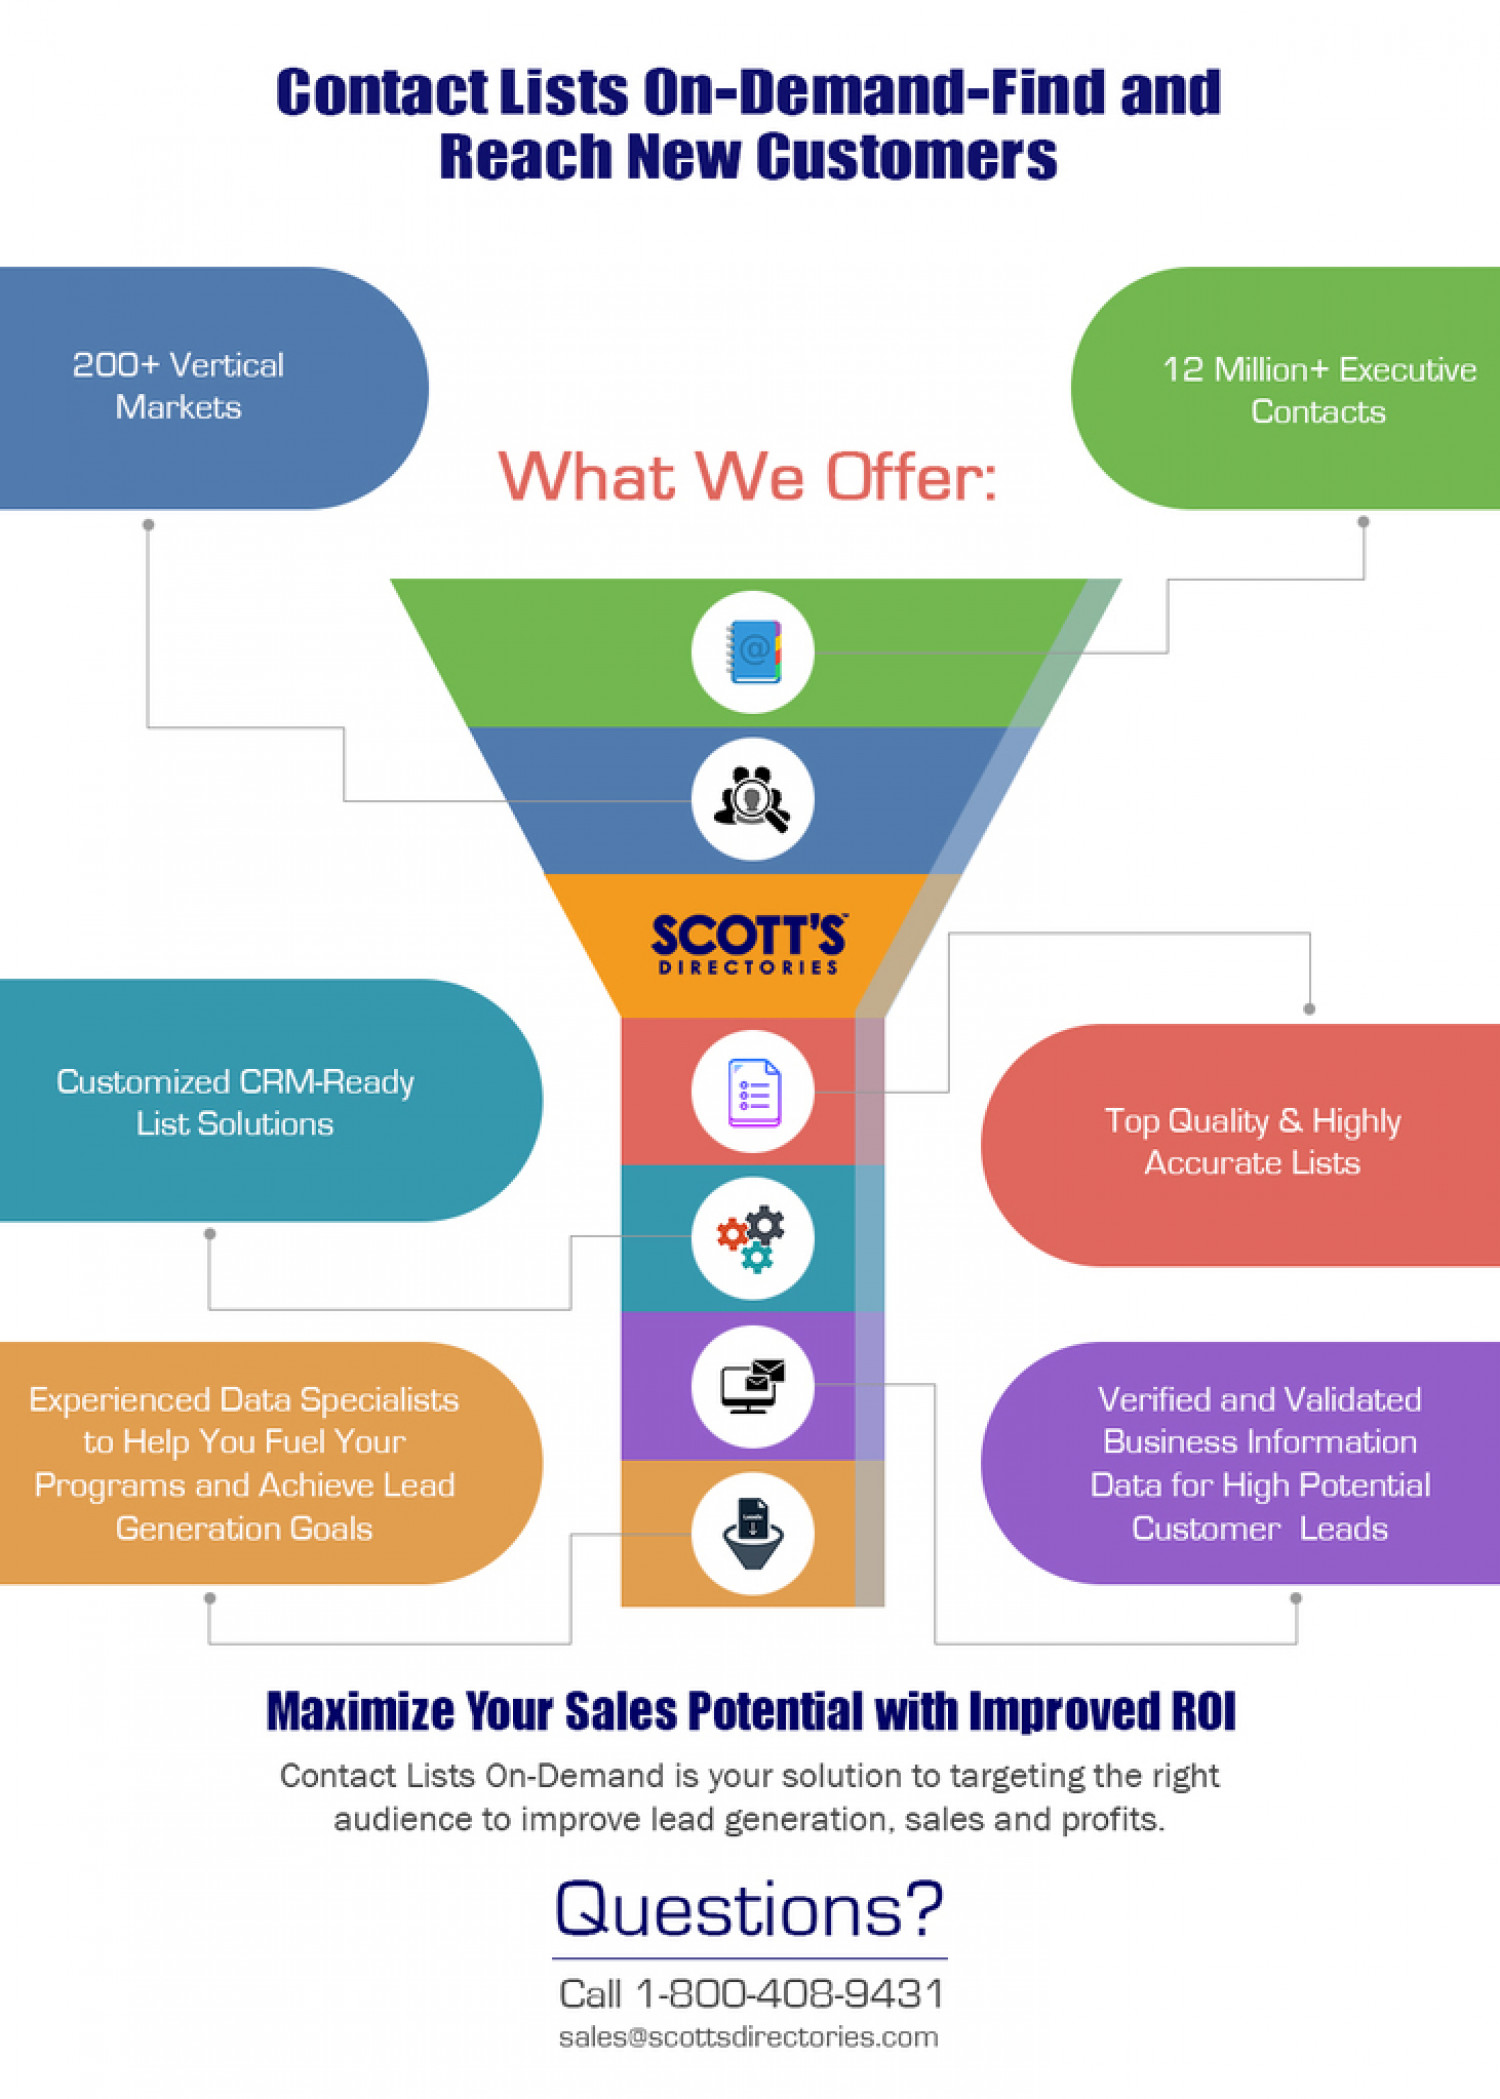 Maximize Your Sales Potential with Improved ROI Infographic